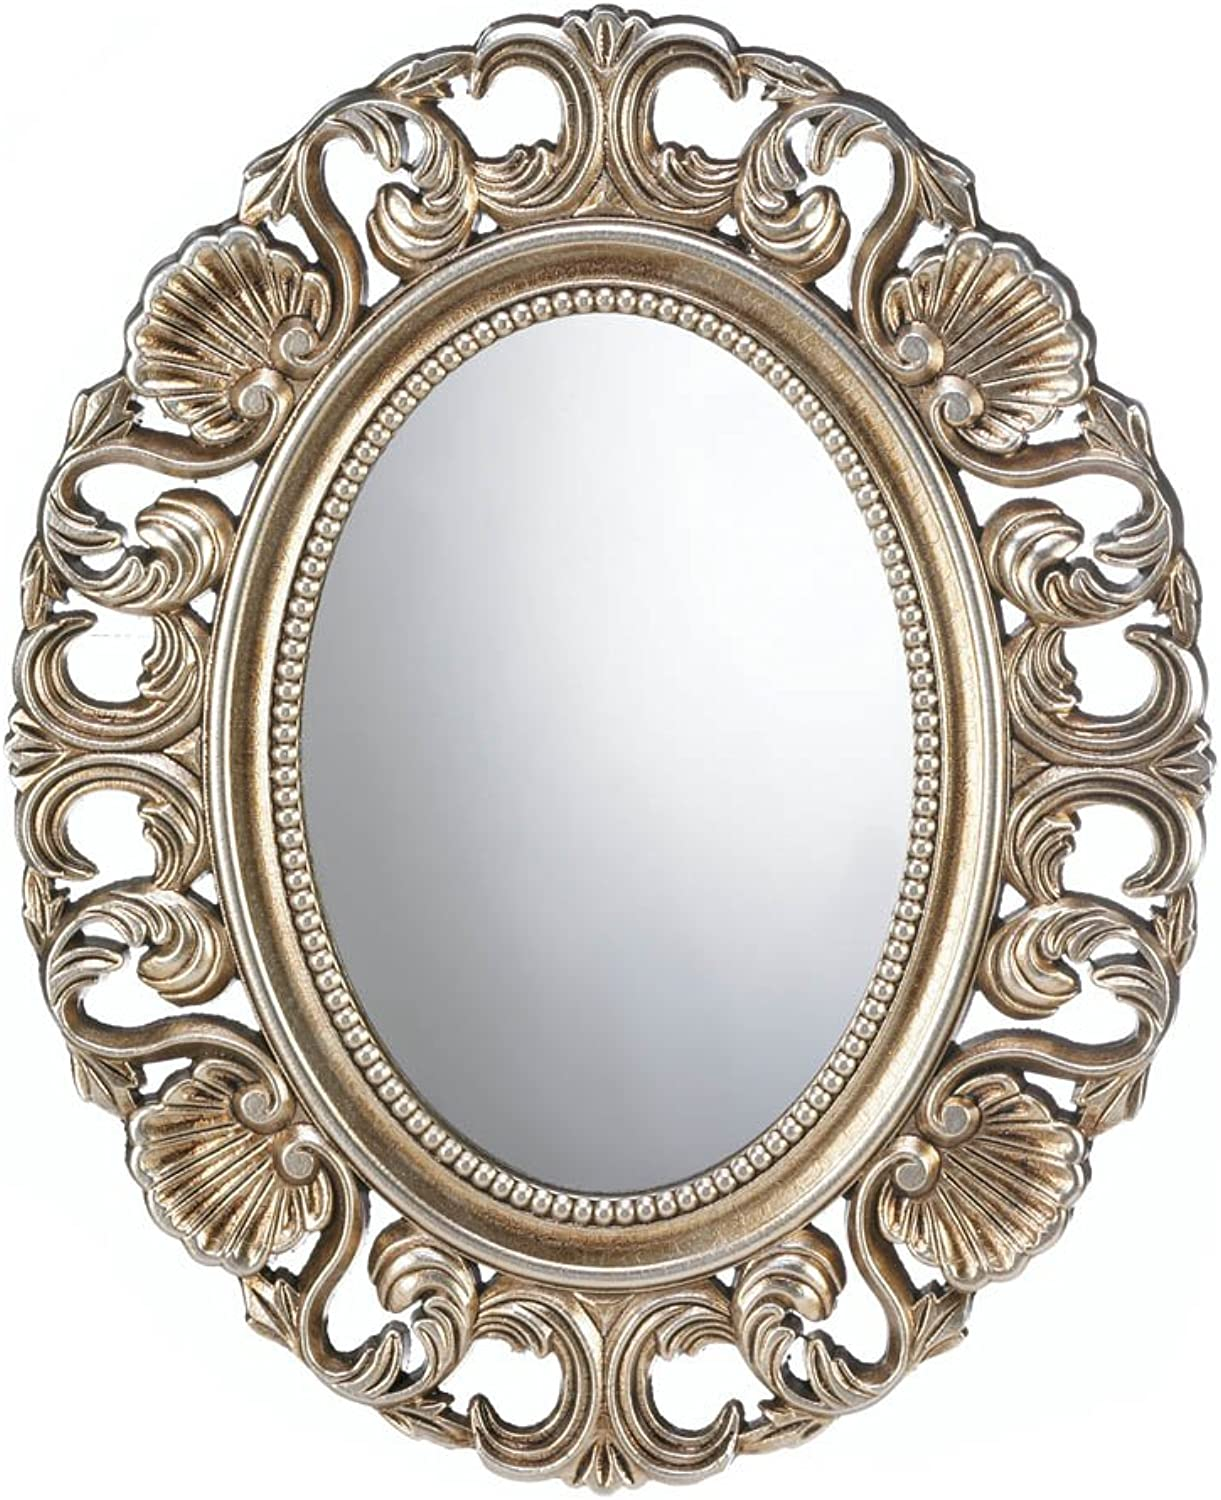 Smart Living Company Gilded Oval Wall Mirror